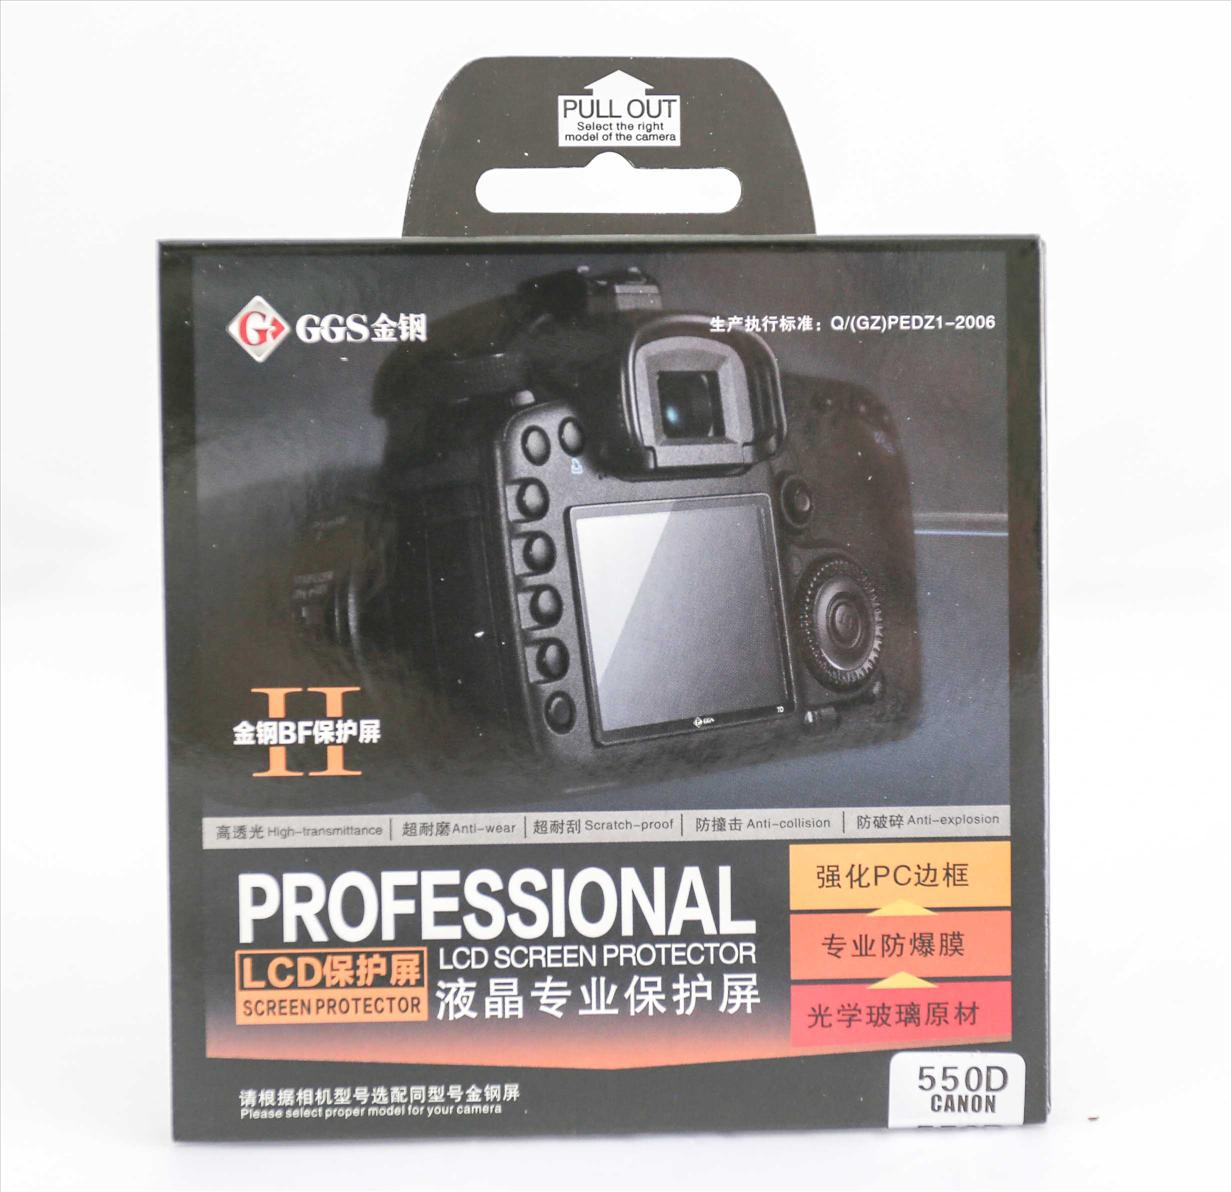 GGS LCD Screen Protector- Canon 550D